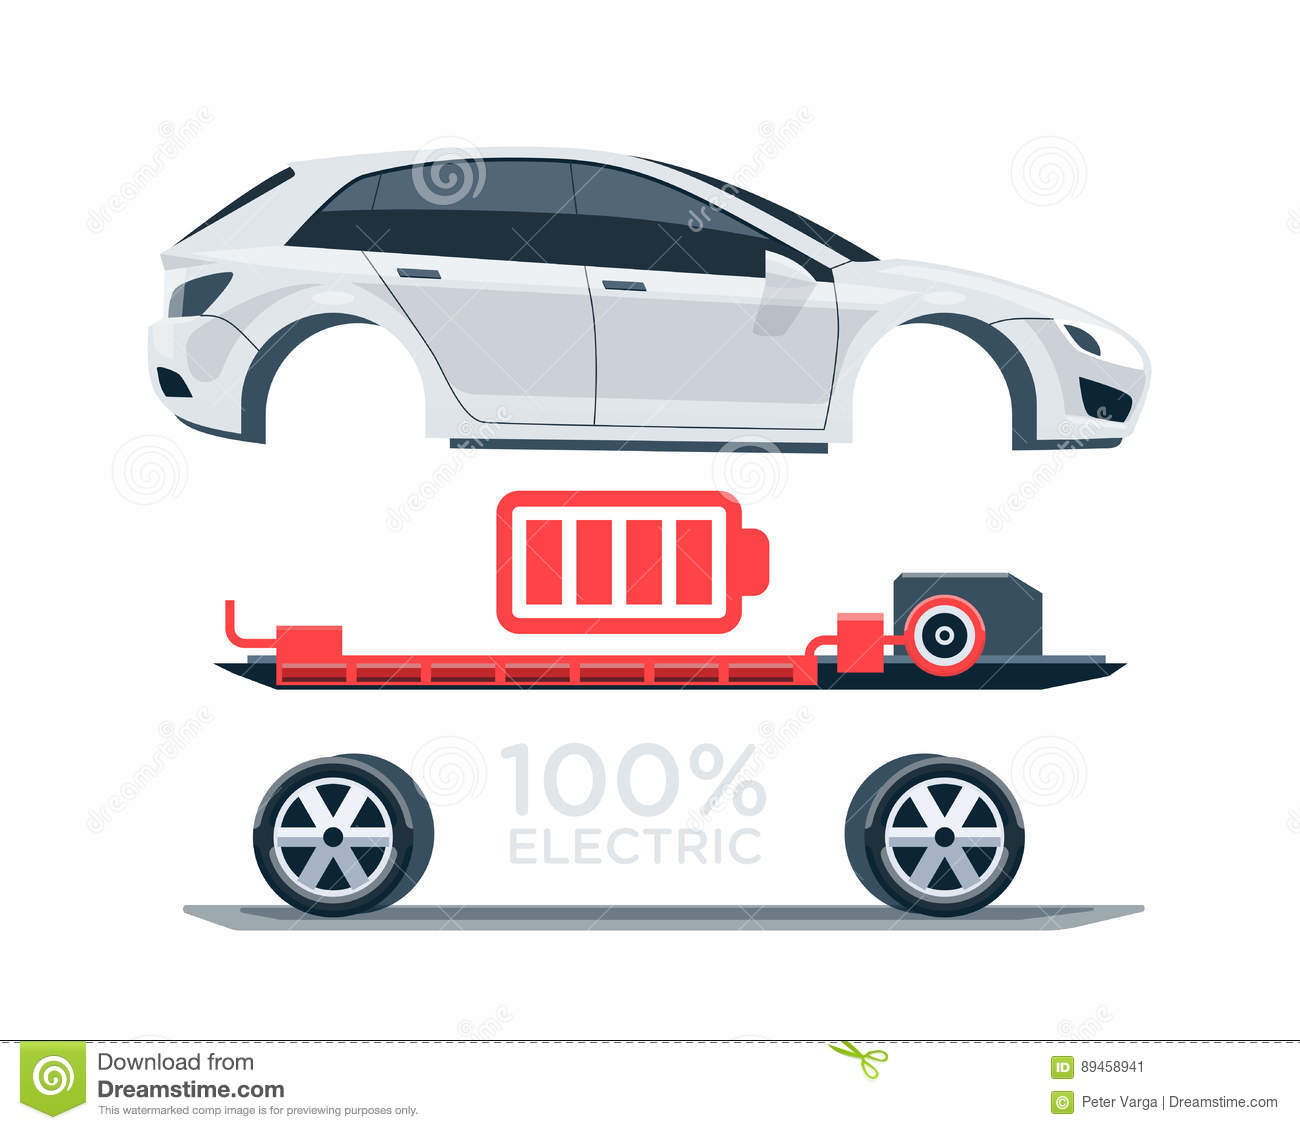 vector illustration scheme of an electric car charging at the charger  station showing electrical components like battery pack, motor, charger,  controller